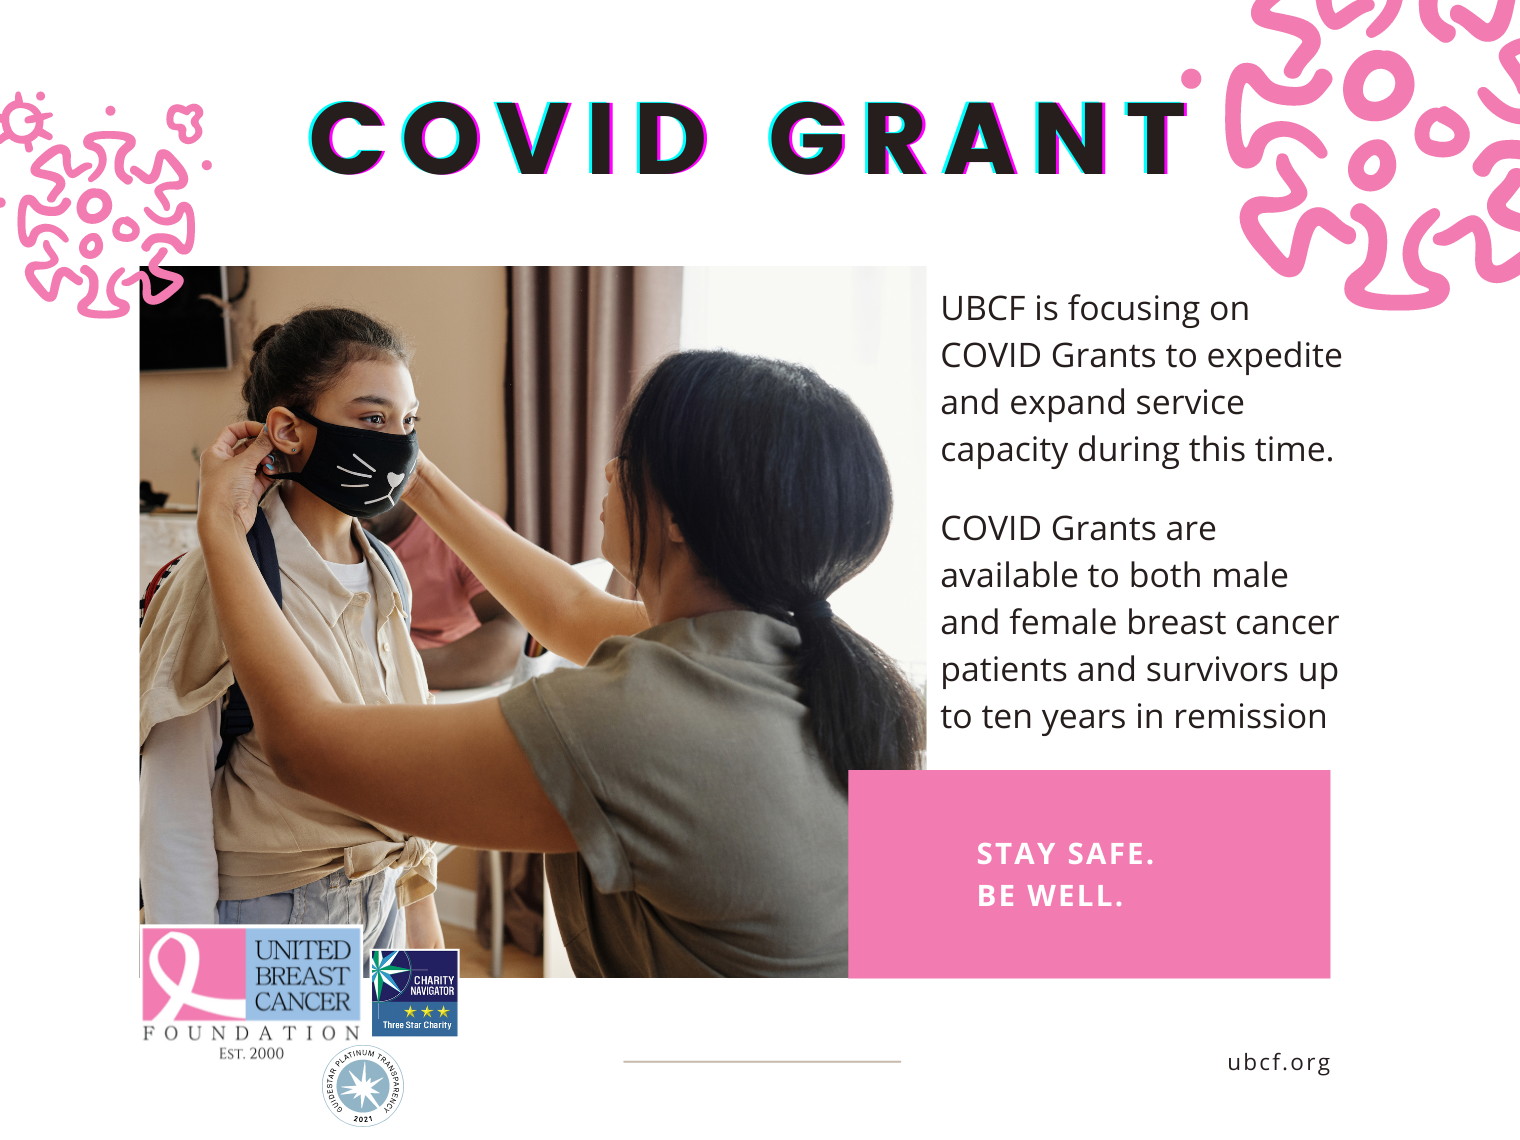 UBCF is expanding and expediting service by focusing on covid grants